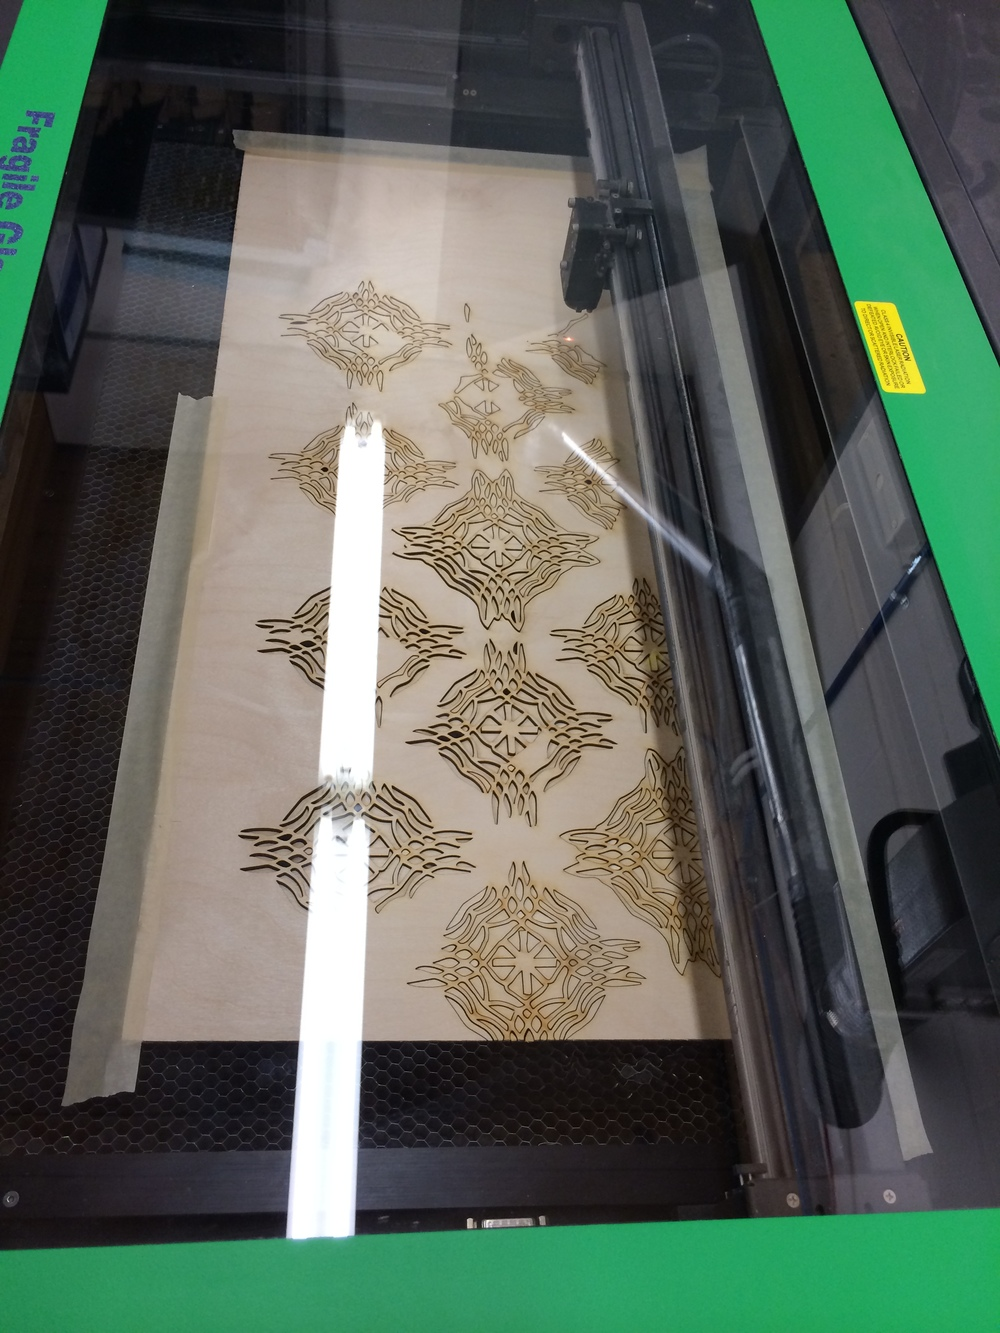 The laser cutter is a lot of fun. Here I'm cutting out hand-drawn knotworks for a test installation. February 2014